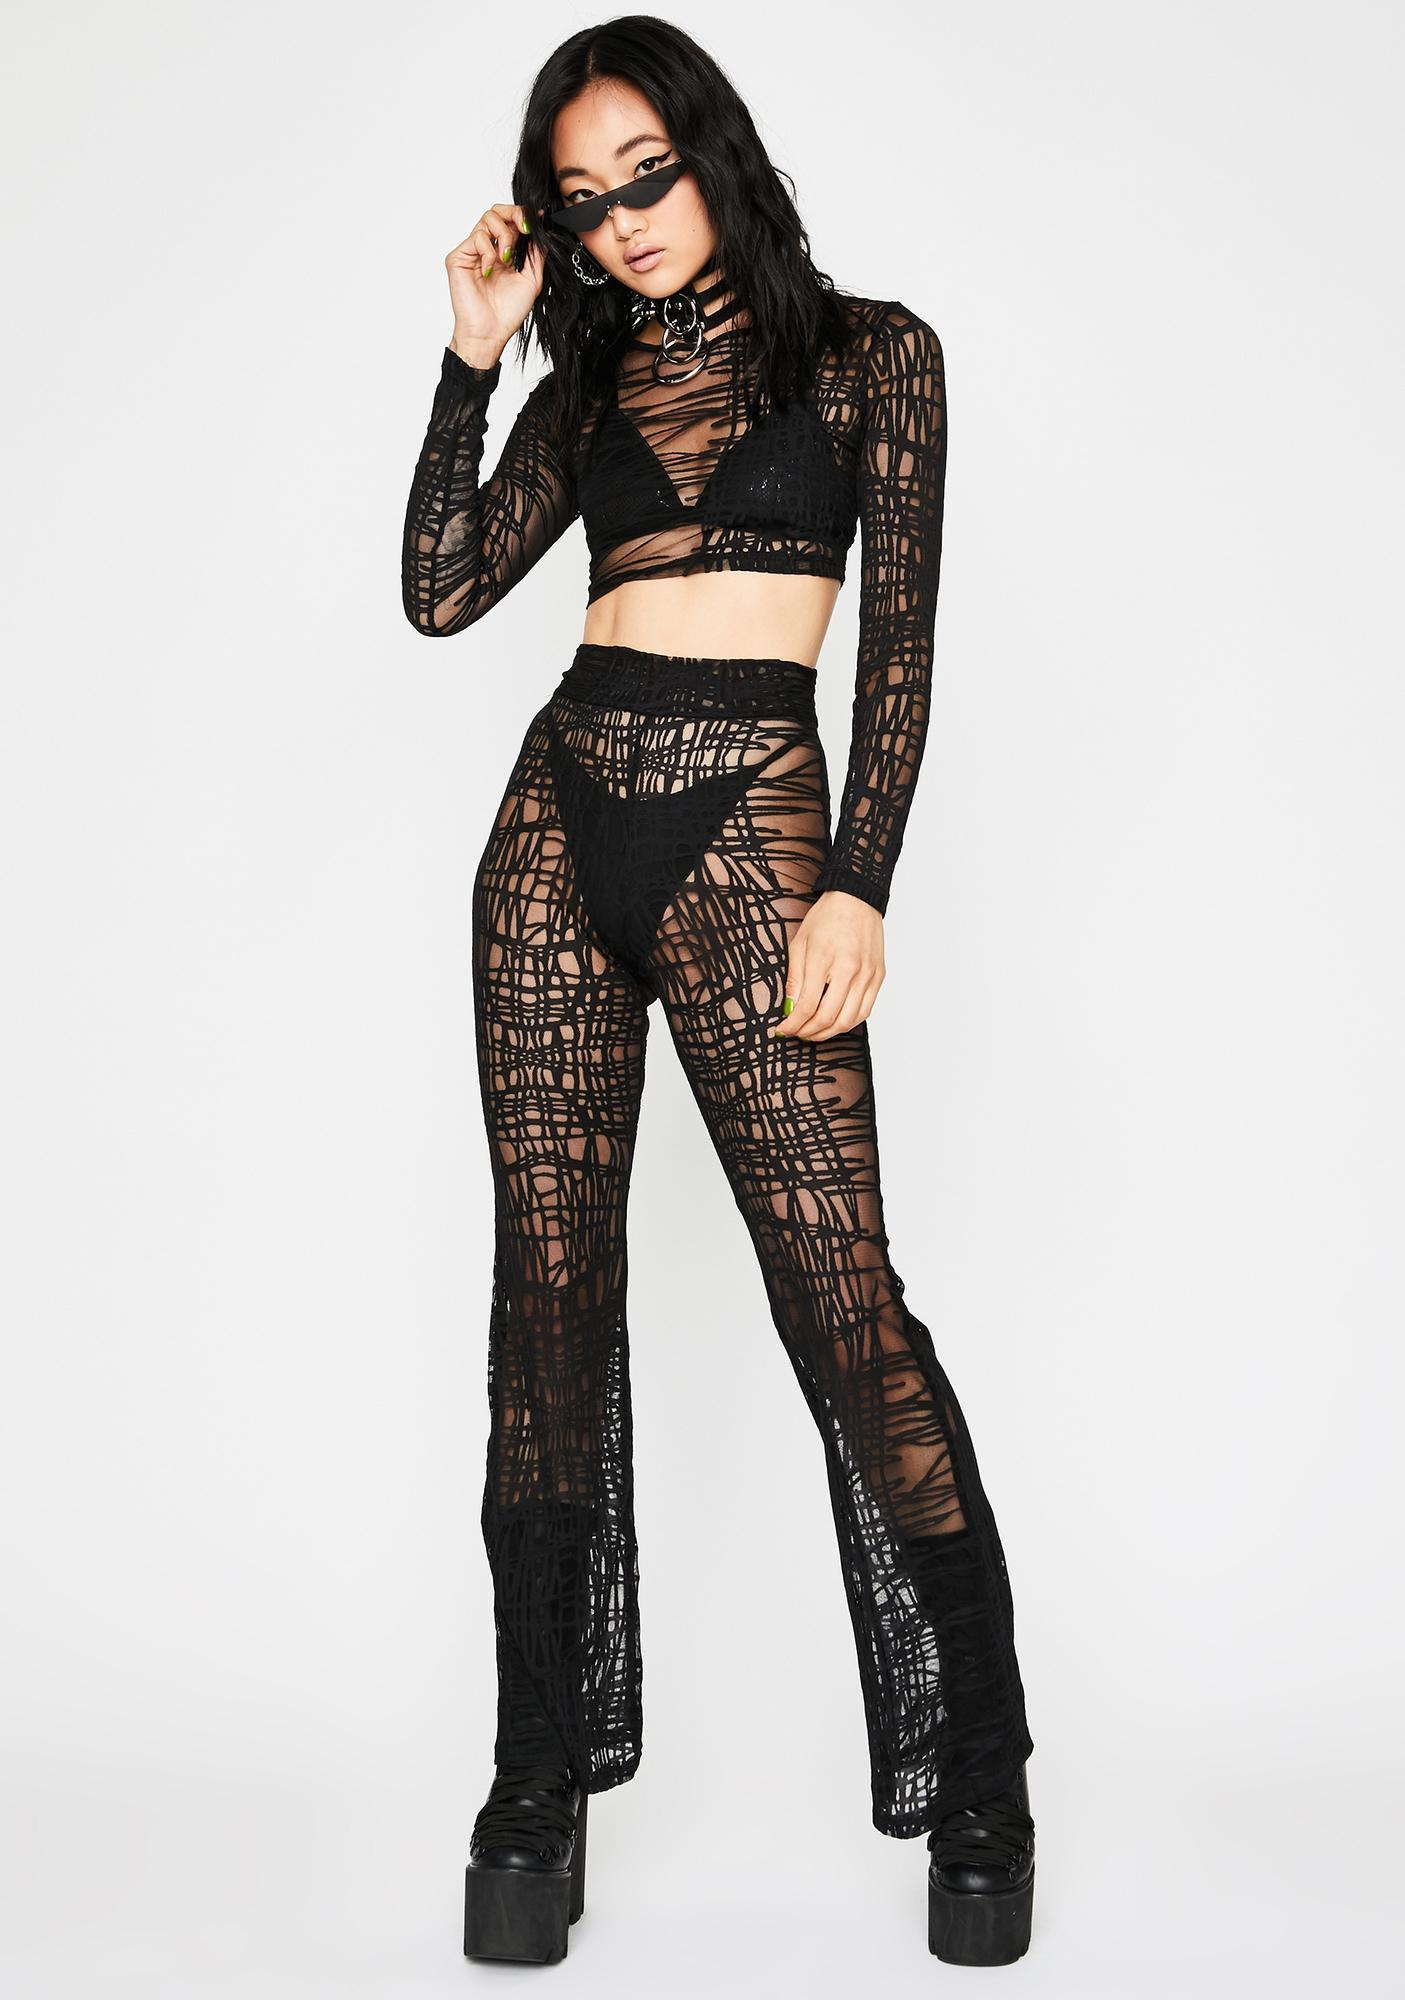 Wicked This Just In Pant Set